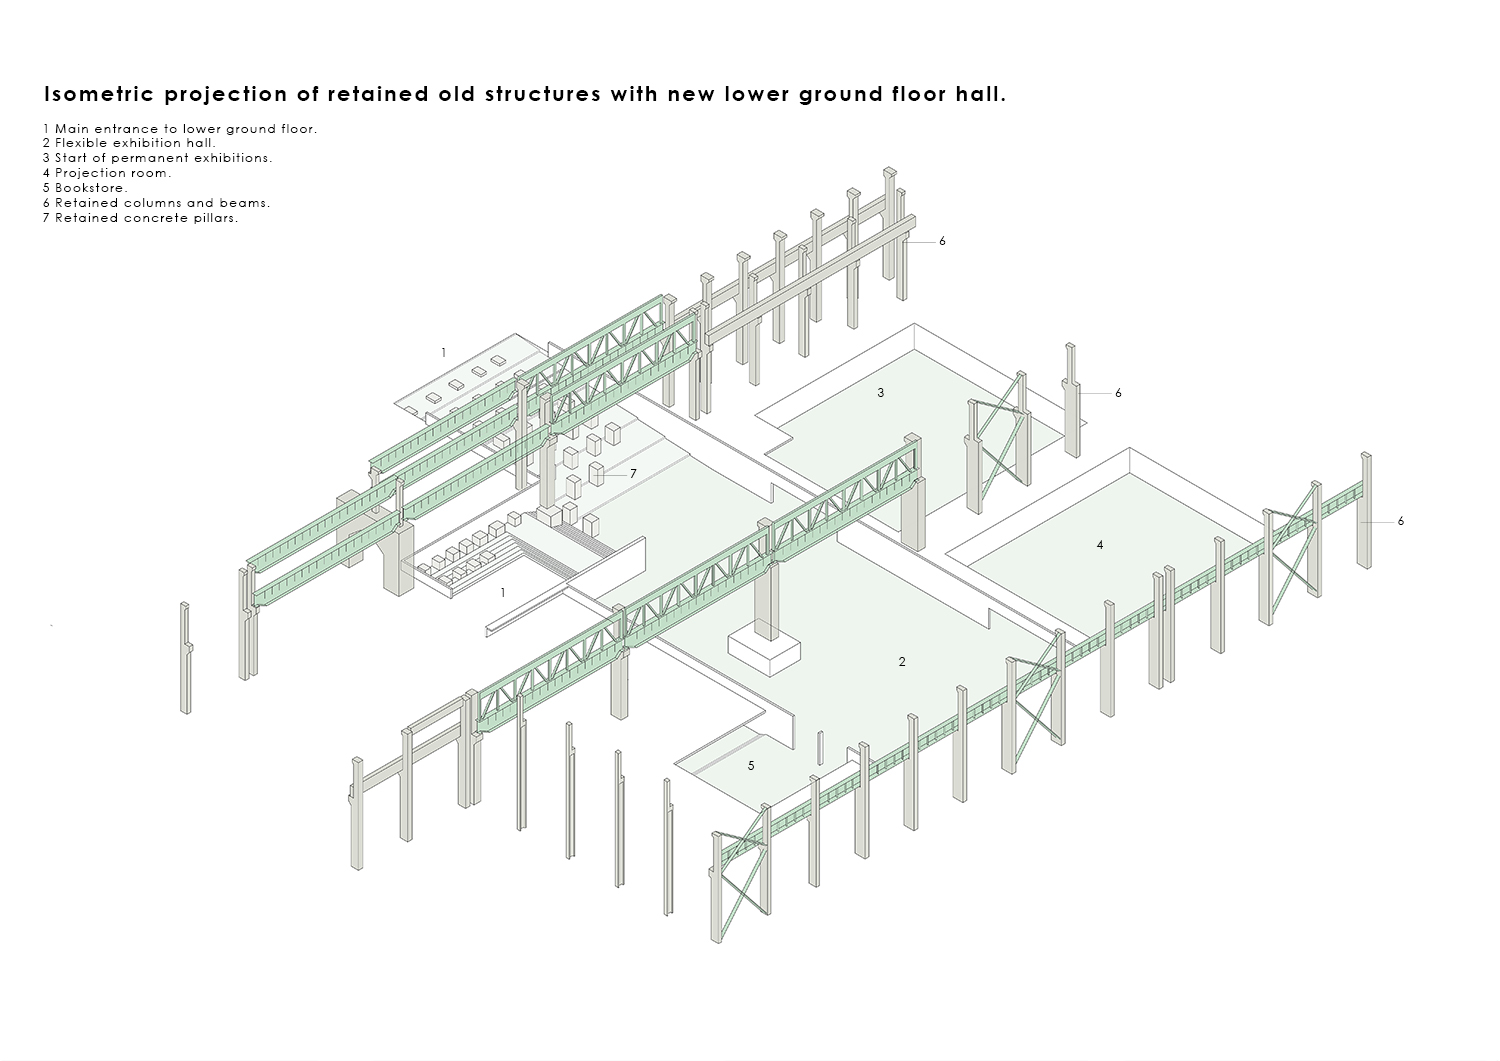 Isometric Projection - retained existing structures WallaceLiu}